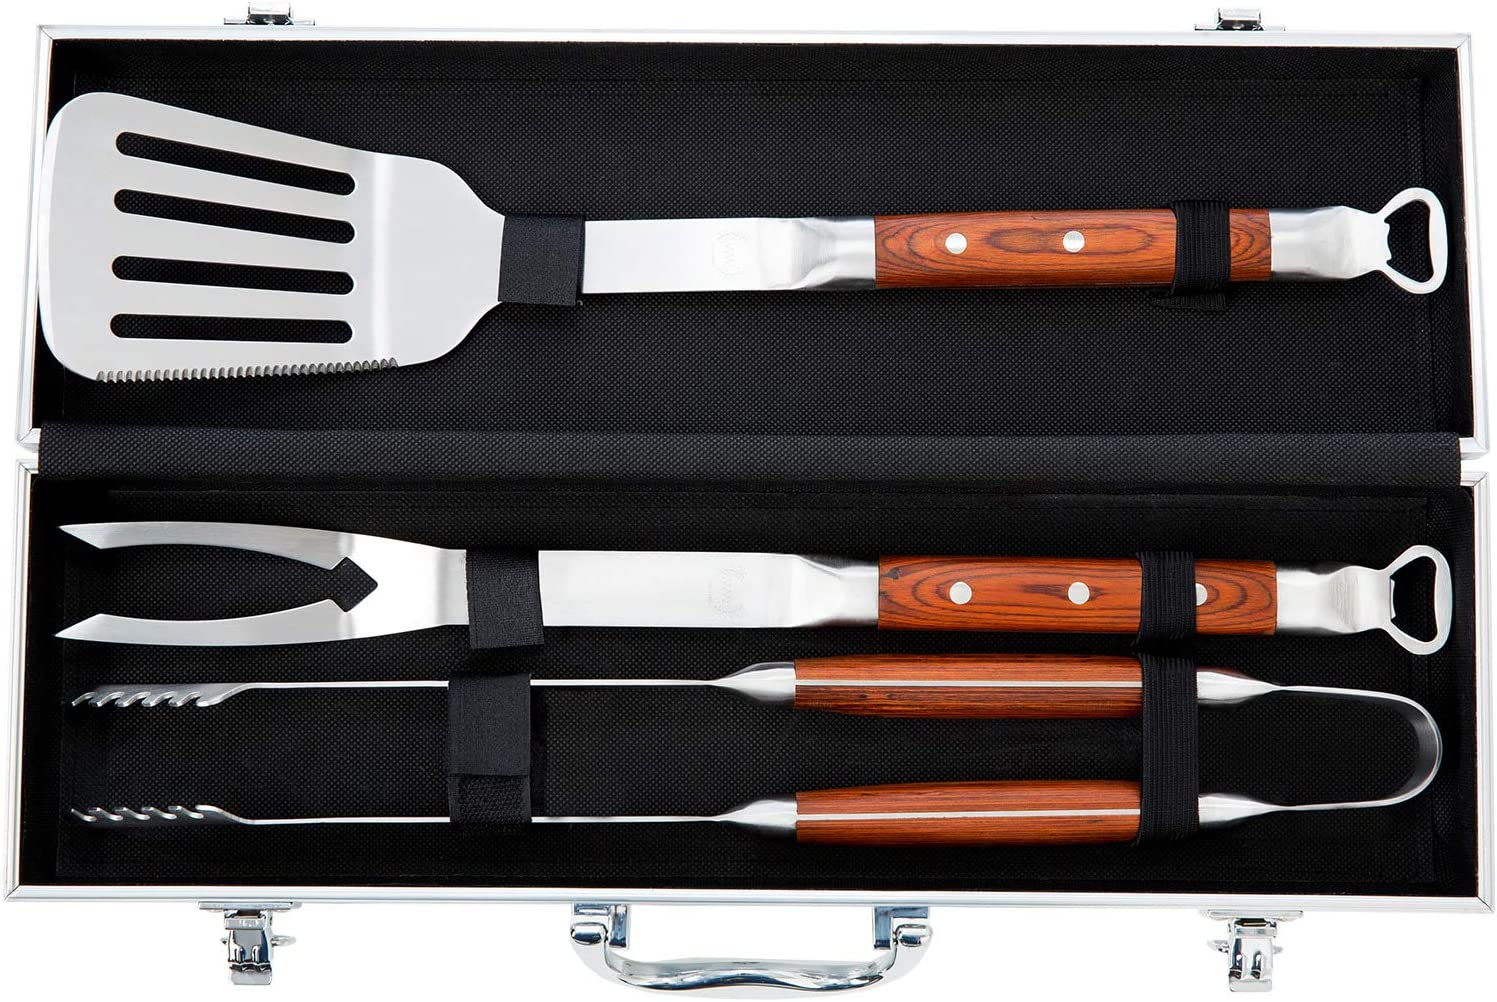 BBQ Tool Set – Grill Tool Set 3pcs – Grill Utensil Set Stainless Steel with Rosewood Handles – BBQ Tool Kit Gift with Carry Case – WareWorks BBQ Utensil Set for Home, Grill, Camping, Travel